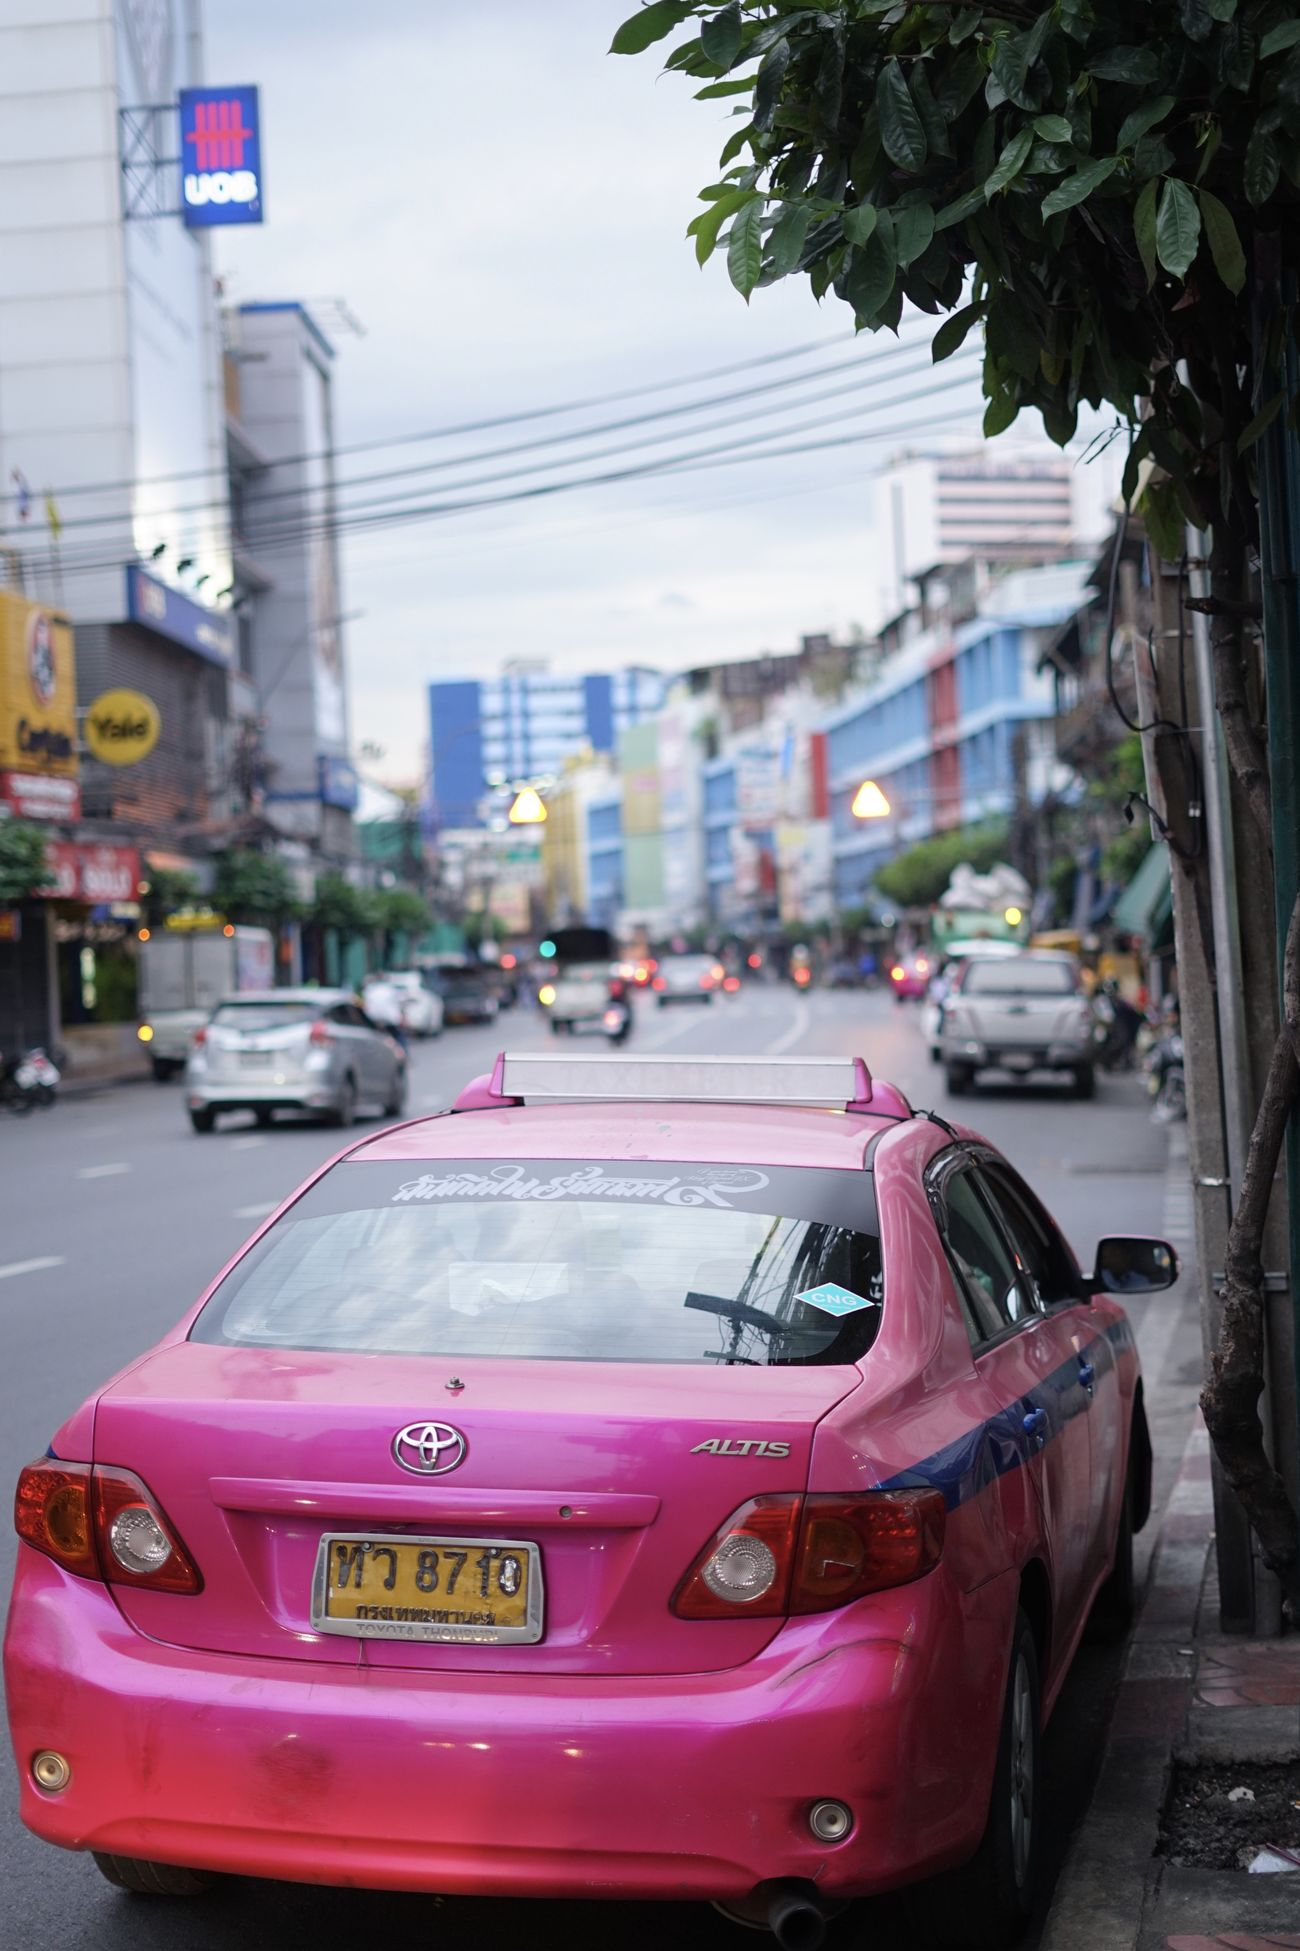 Bangkok symbolic pink taxi Architecture Bangkok Building Exterior Built Structure Car City City Break City Life City Street Day Mode Of Transport No People Outdoors Pink Pink Color Street Taxi Taxi Thailand Traffic Transportation Travel Travel Destinations Vehicle Mirror Yellow Taxi